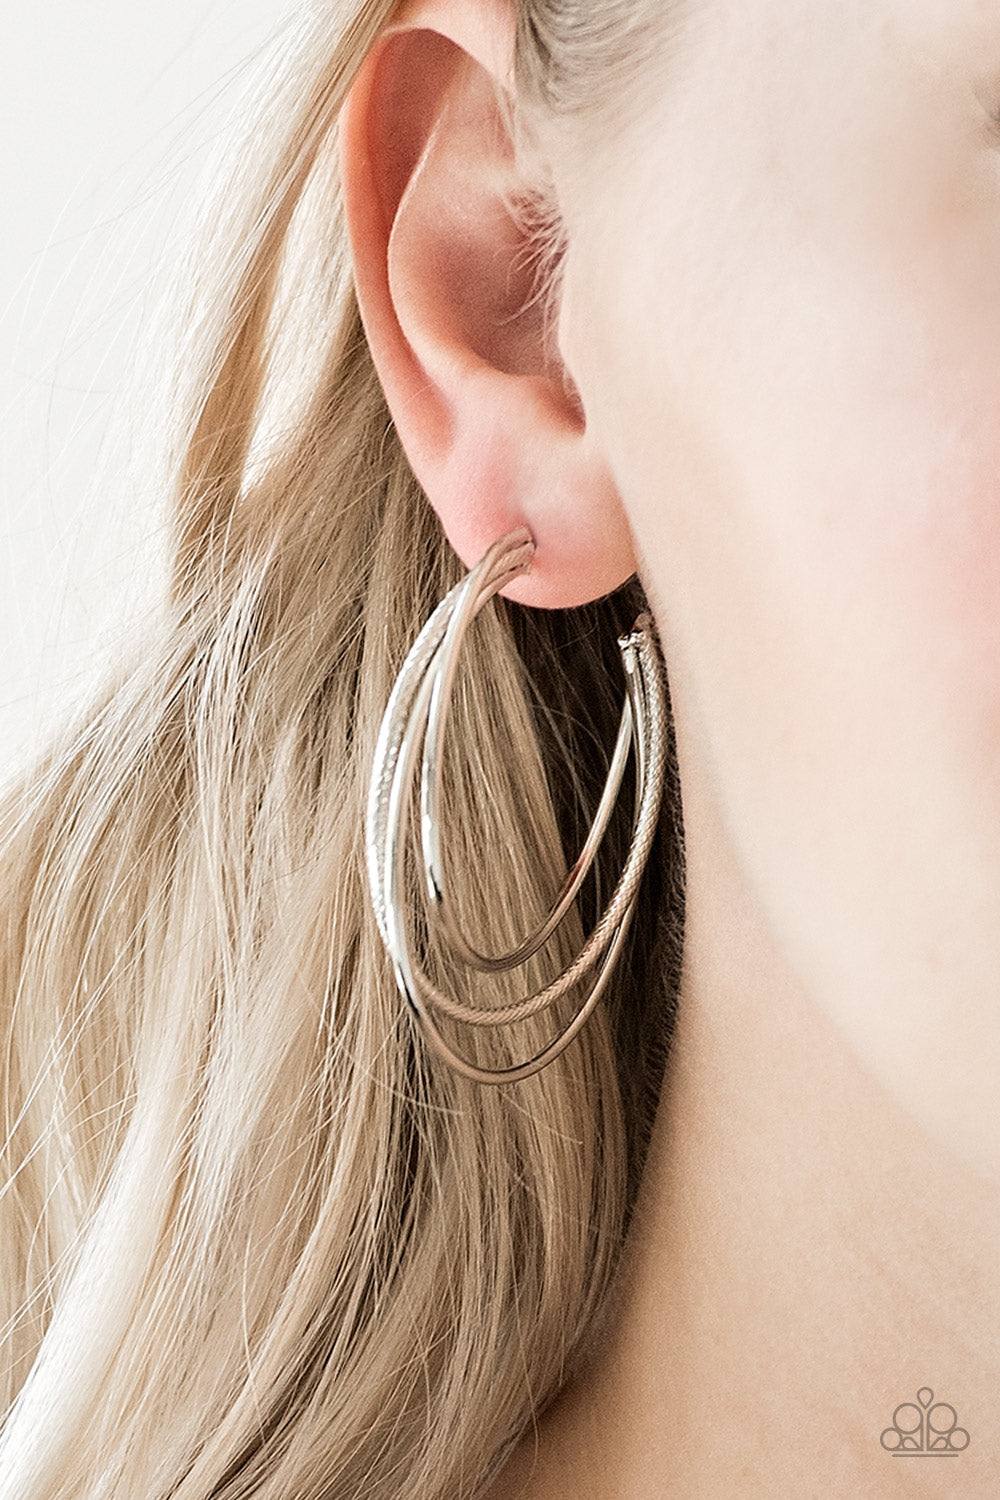 Featuring smooth and serrated finishes, shiny silver frames layer into a bold hoop for a spunky industrial flair. Earring attaches to a standard post fitting. Hoop measures 1 3/4